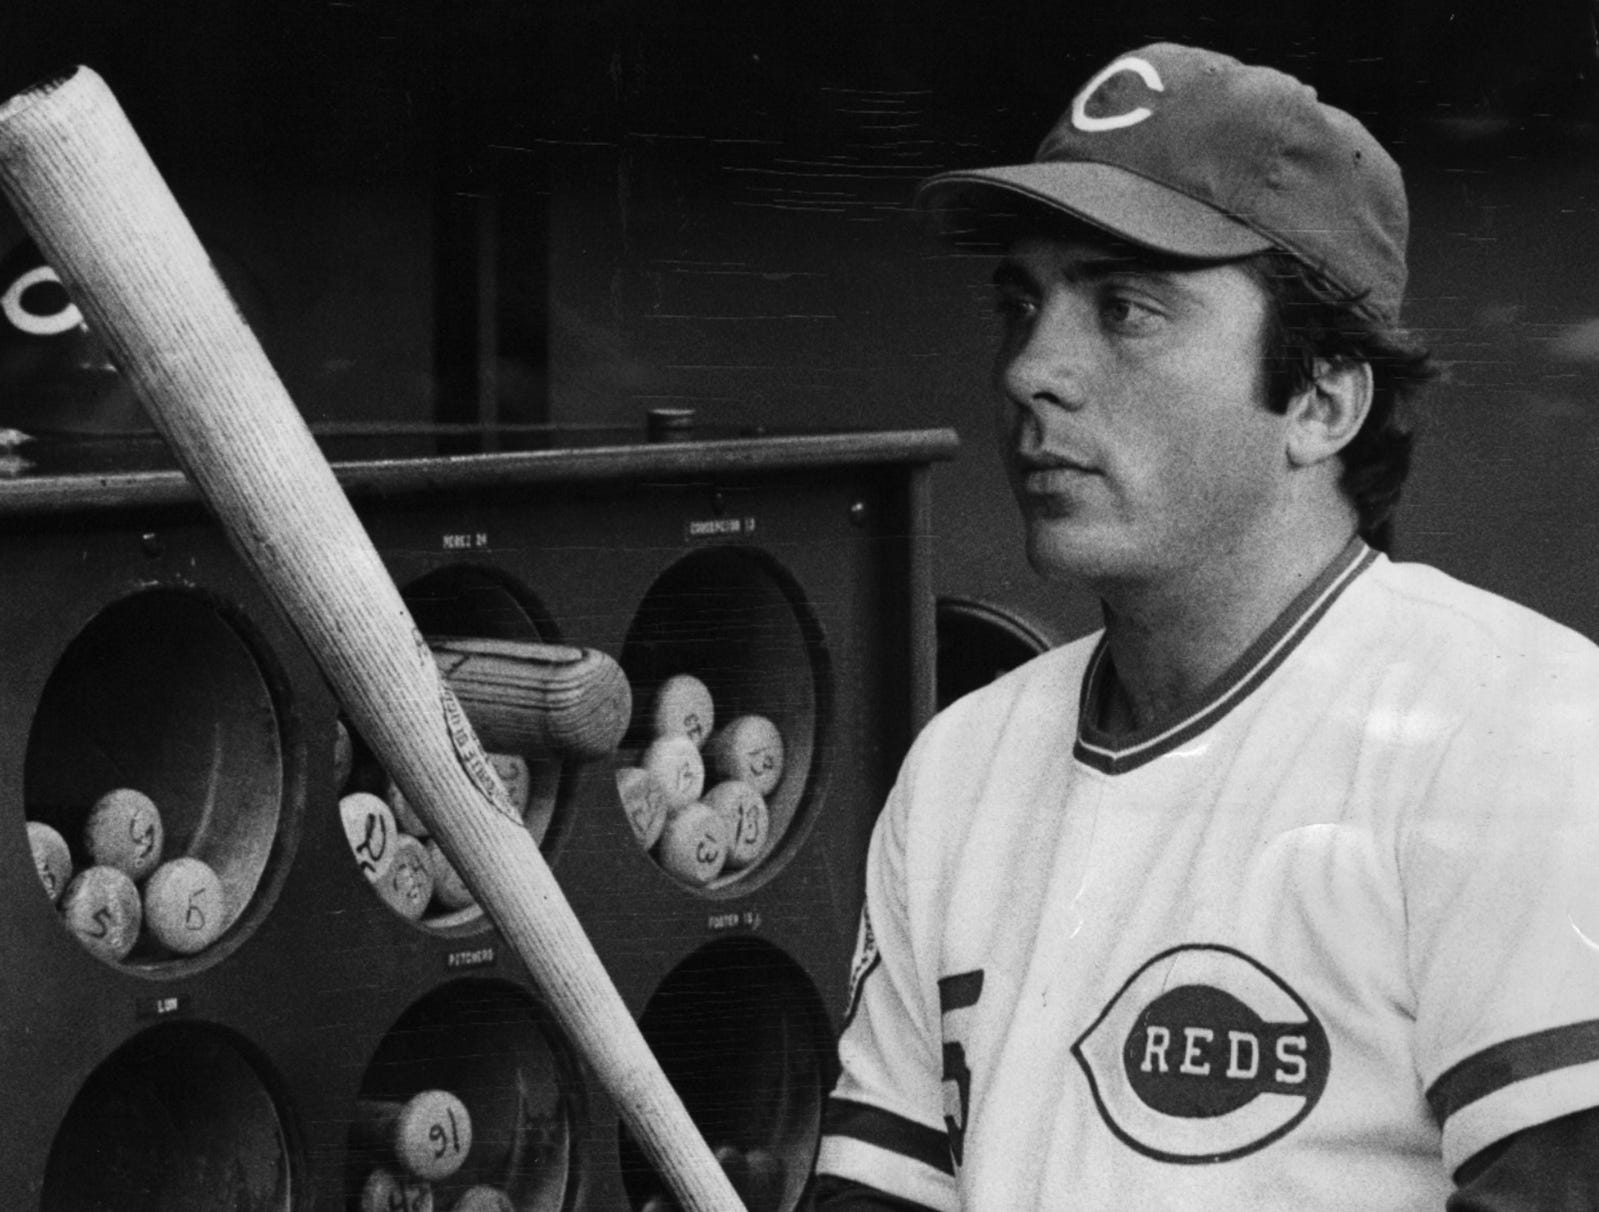 """1976: Johnny Bench. The Enquirer/Gerry Wolter scanned September 11, 2012 FROM A SUNDAY AUGUST 1, 1976 ARTICLE: Johnny Bench, Catcher, Cincinnati Reds: """"My Boyhood idols were Mickey Mantle and Lou Gehrig,"""" he said. """"I admired those two because of all the adversities they had to overcome and play with....These two men proved you can overcome a lot of blockades and detours in a lifetime if you want to make the effort."""" Bench today admires the Rev. Billy Graham, because """"despite all the temptations in his life he as maintained his respect wile others have faltered. FROM A WEDNESDAY OCTOBER 27, 1976 ARTICLE: Cincinnati Reds All-Star catcher Johnny Bench says he tries to turn losing into an asset. """"I try to keep a good perspective on losing. It's certainly not the end of the world. If I lost, it merely means that someone else was better than me that day."""" """"I try to find a logical reason why I lost and then correct it. But in life, like sports, you win some and you lose some."""" FROM A FRIDAY JULY 29, 1977 REFER: Cubs Down Reds 16-15 In Bat Battle, Page C-1."""